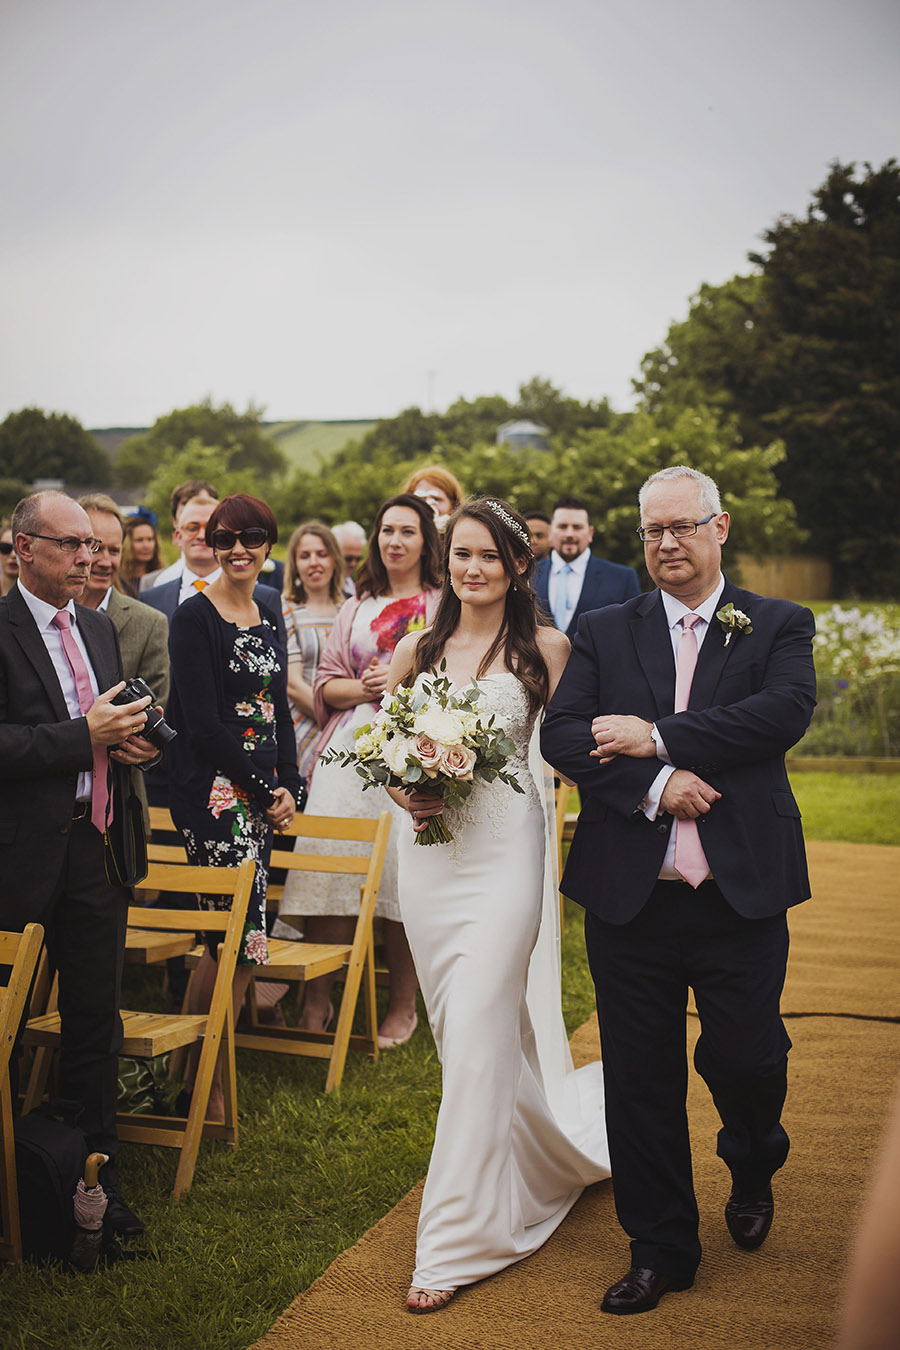 Relaxed outdoor wedding at Cott Farm Barn with images by Heather Birnie Photography on the English Wedding Blog (17)